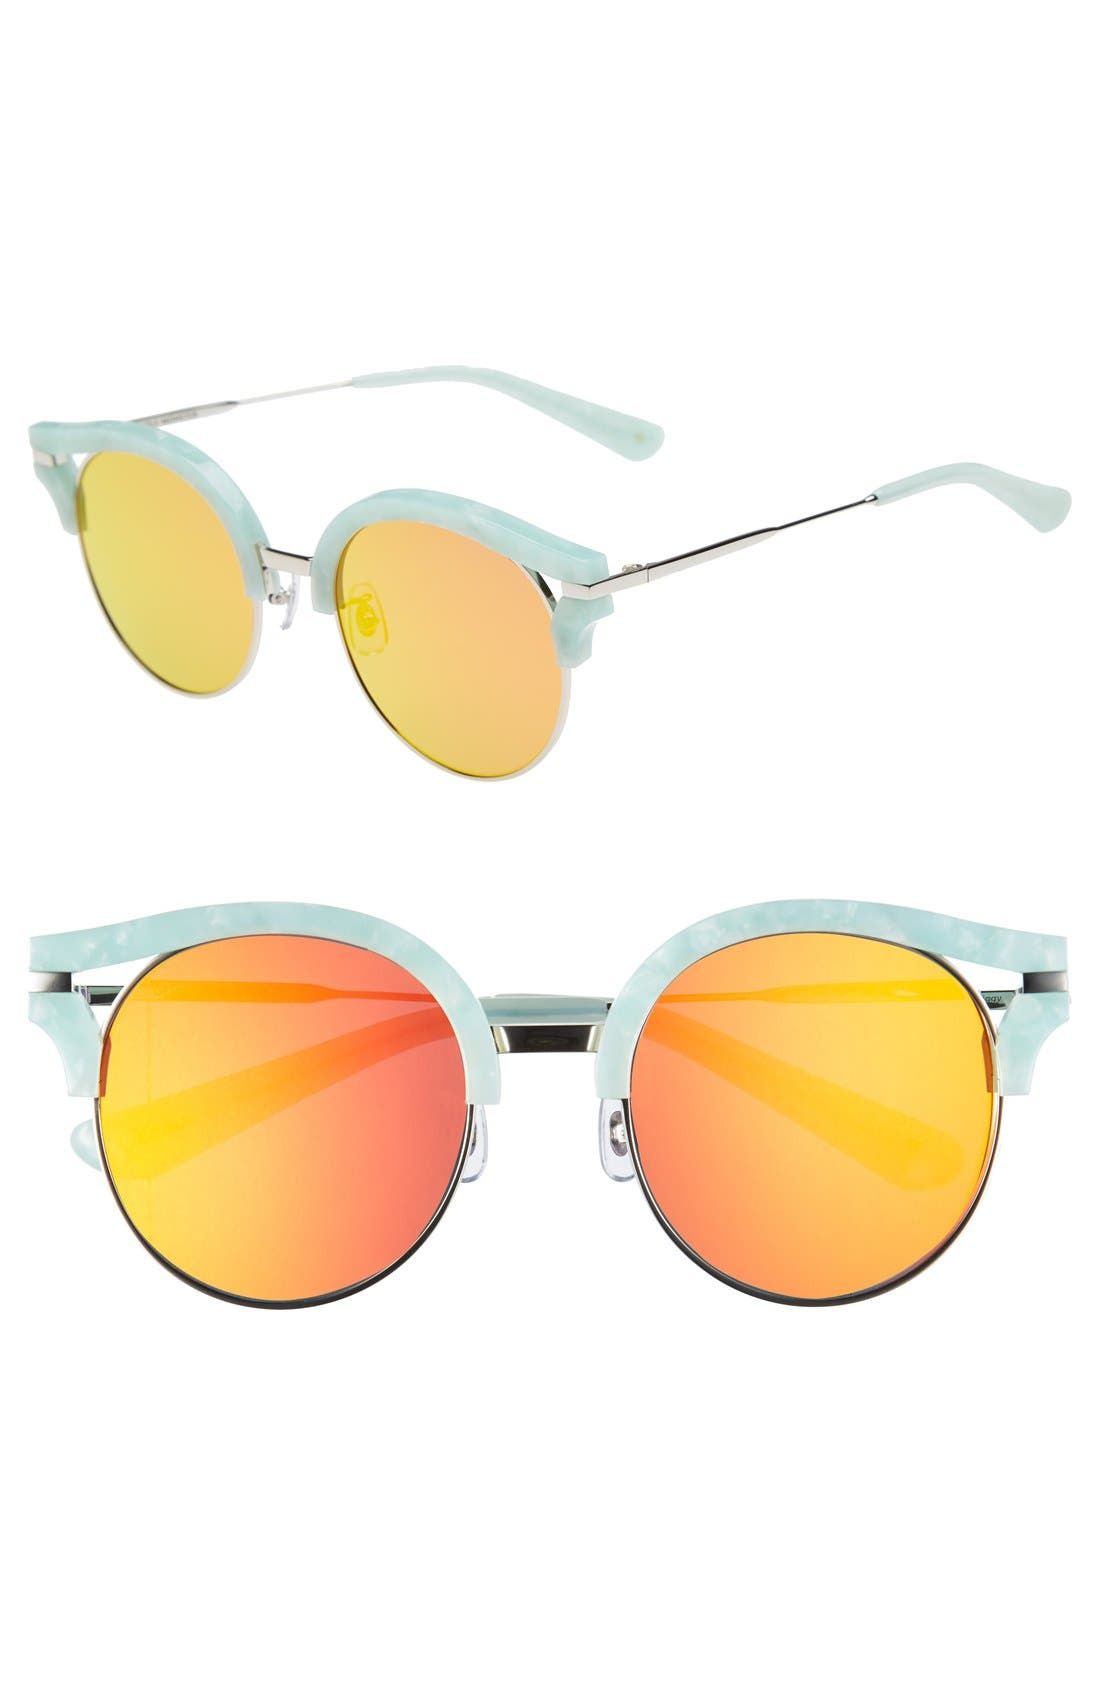 Main Image - Gentle Monster 50mm Retro Sunglasses